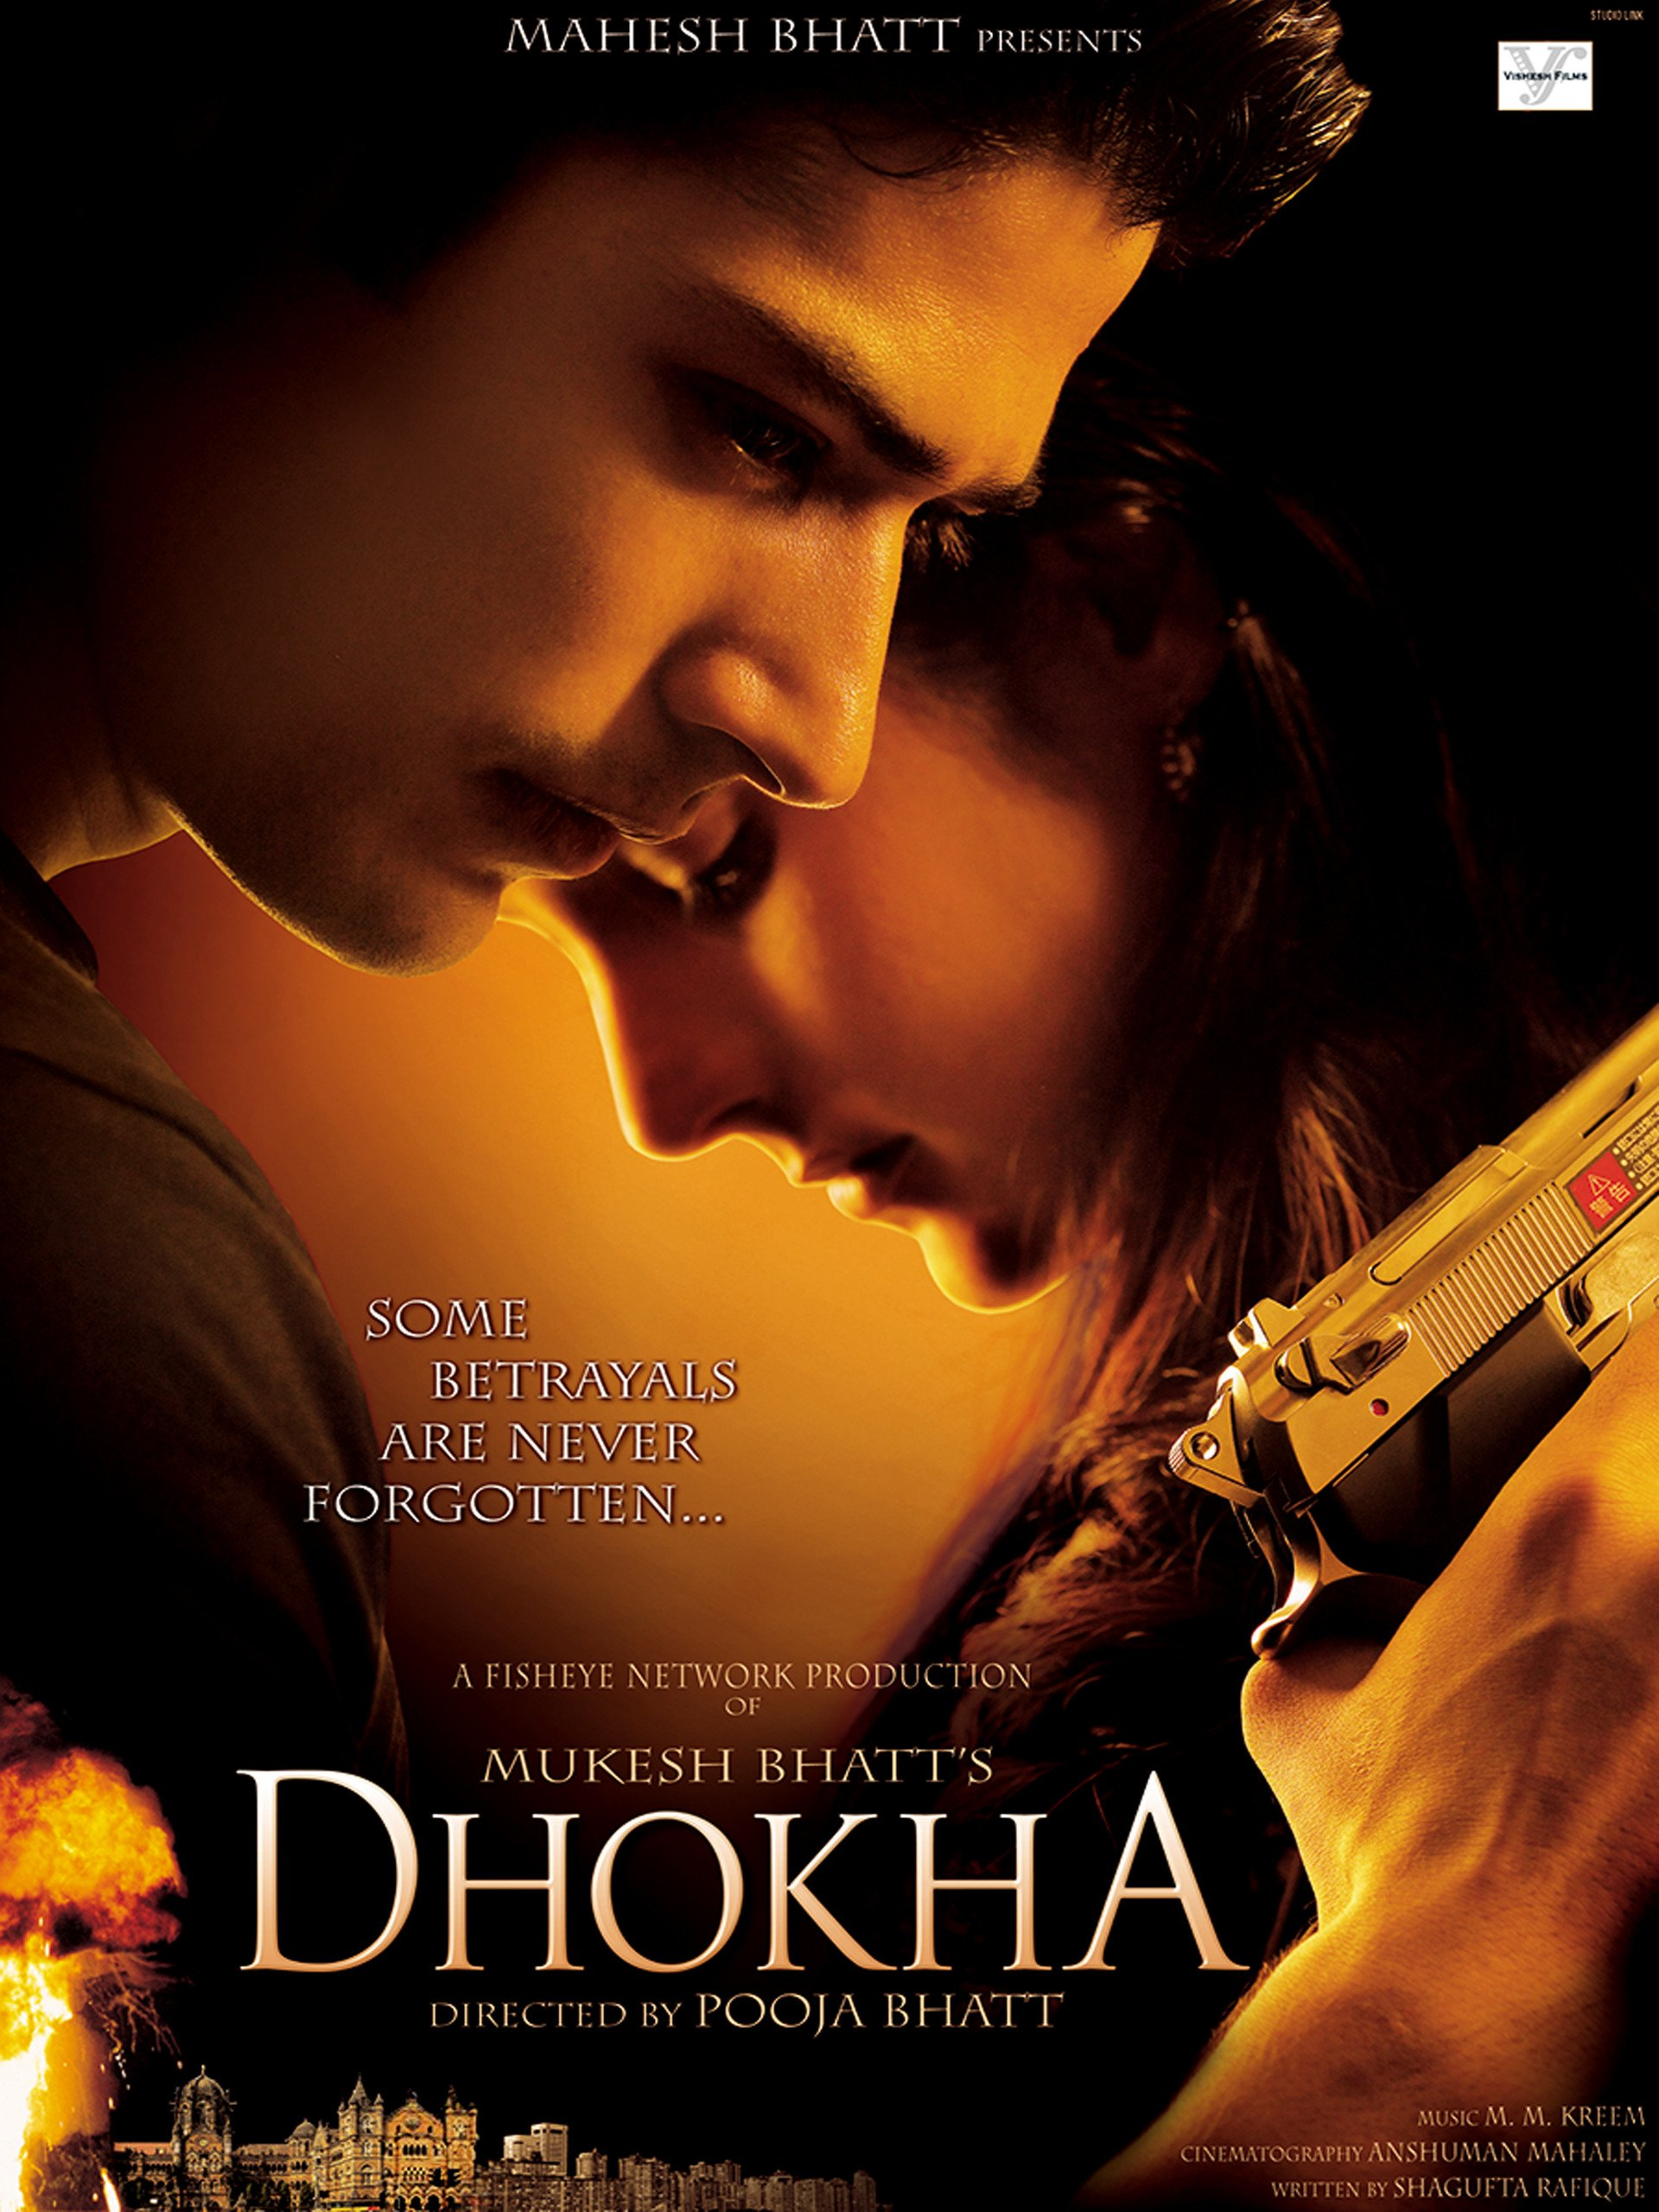 Dhokha Movie Review Release Date Songs Music Images Official Trailers Videos Photos News Bollywood Hungama